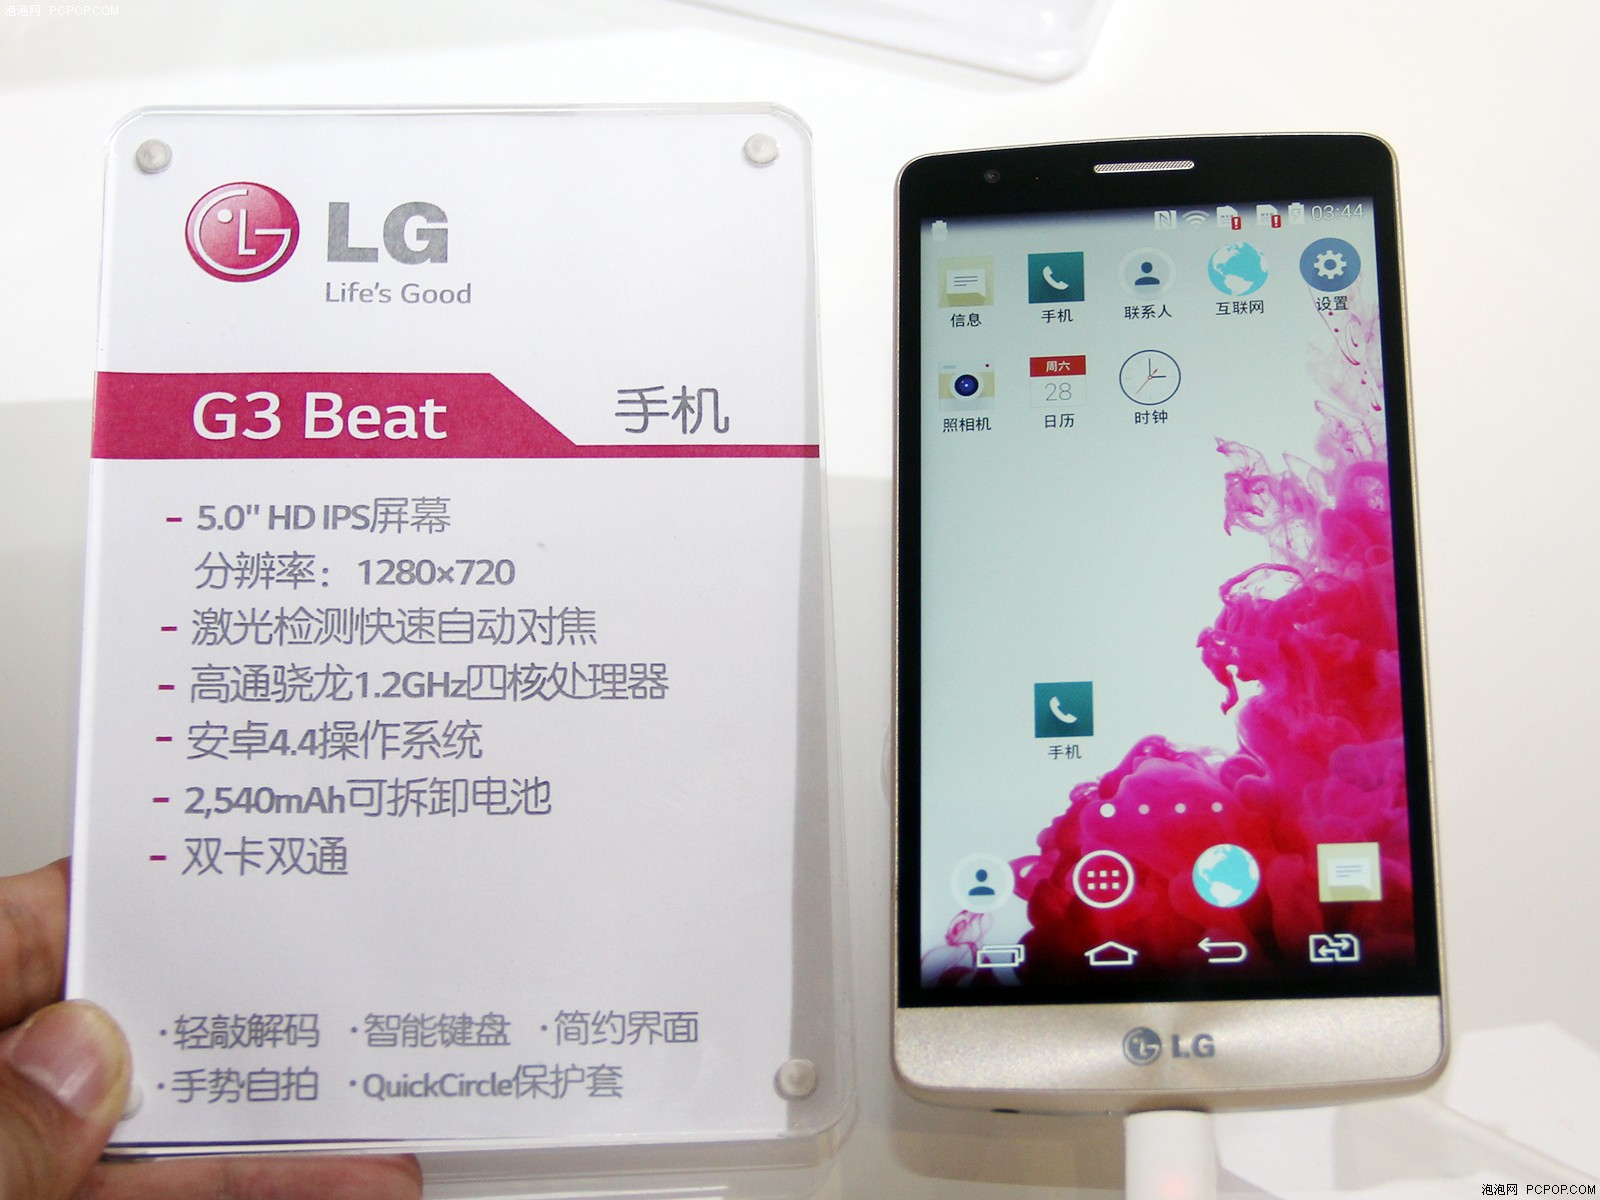 lg g3 beat/mini_featured